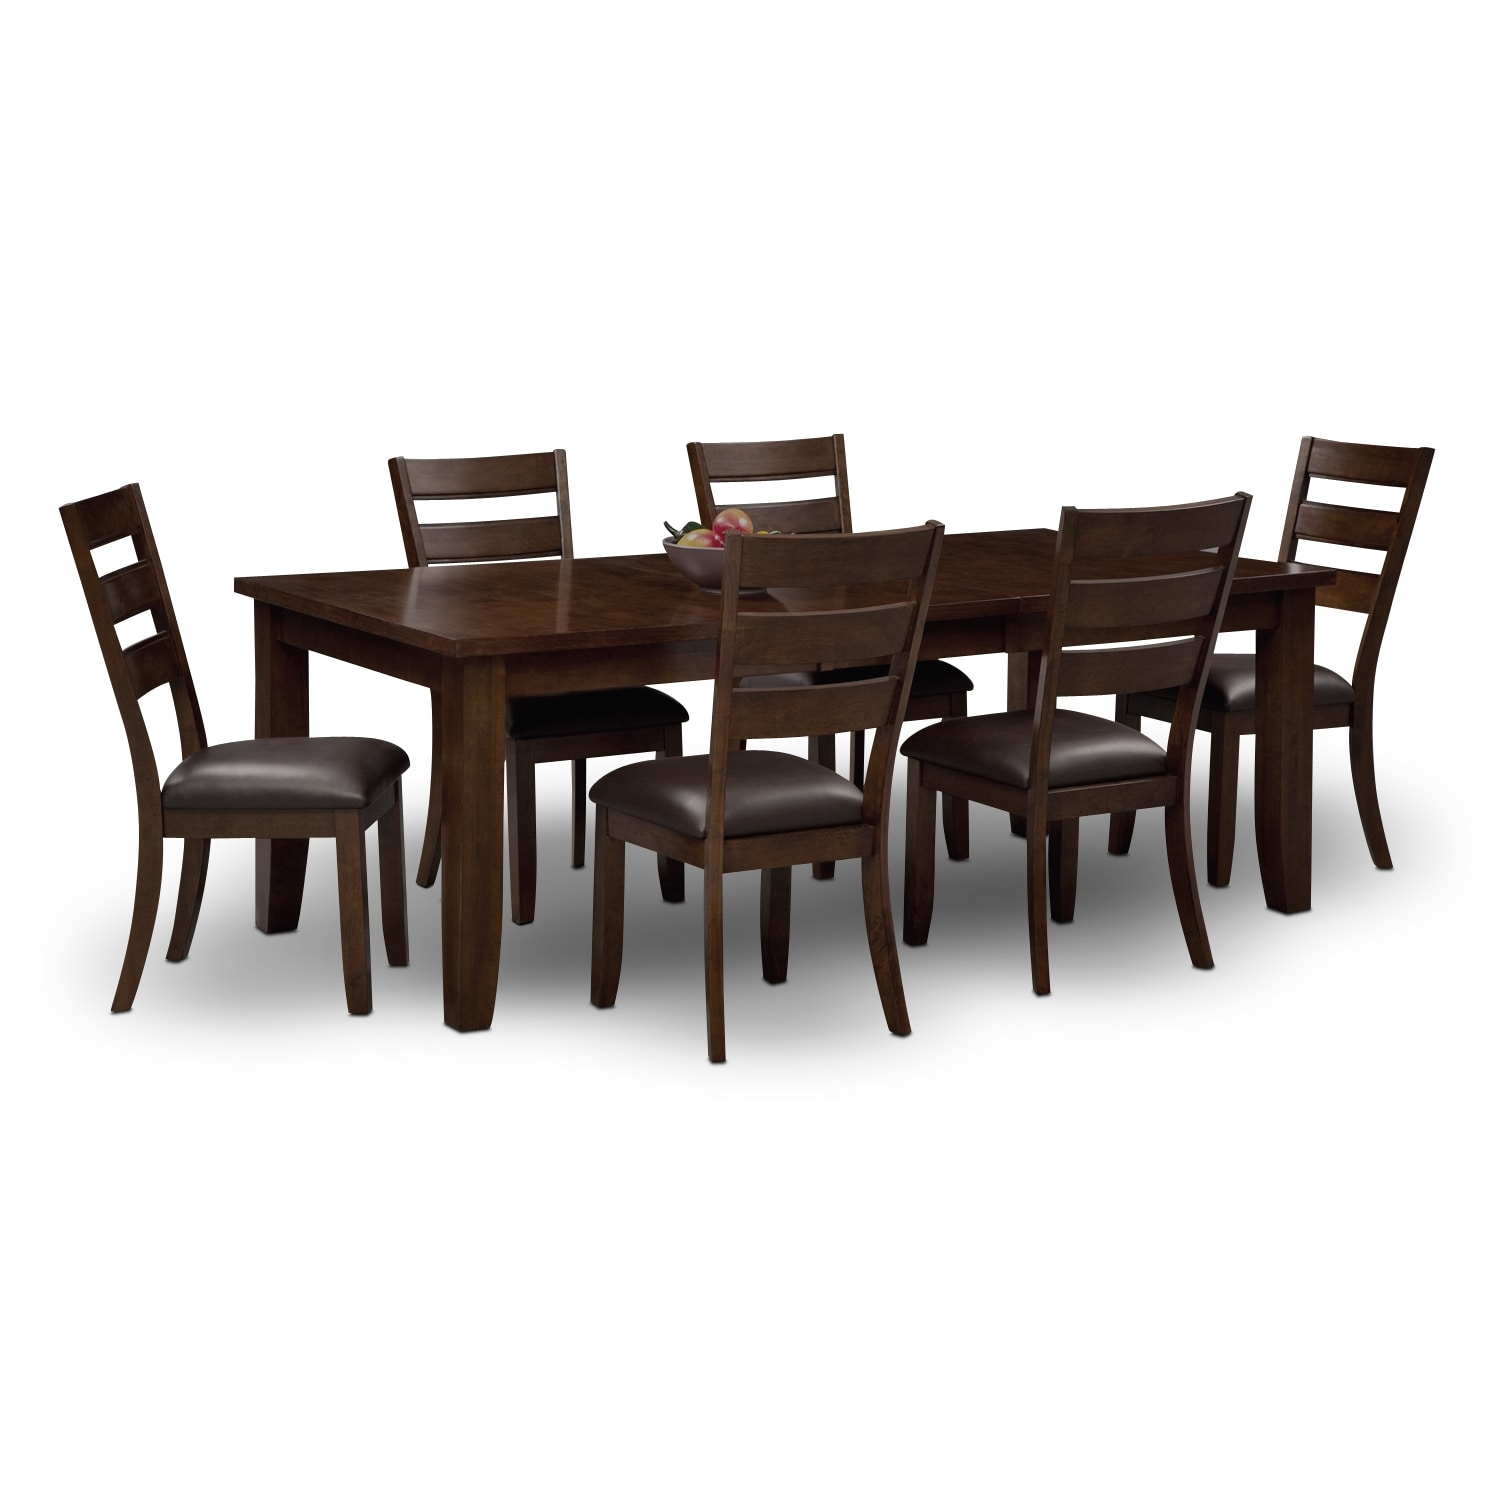 Abaco 7 Pc. Dining Room